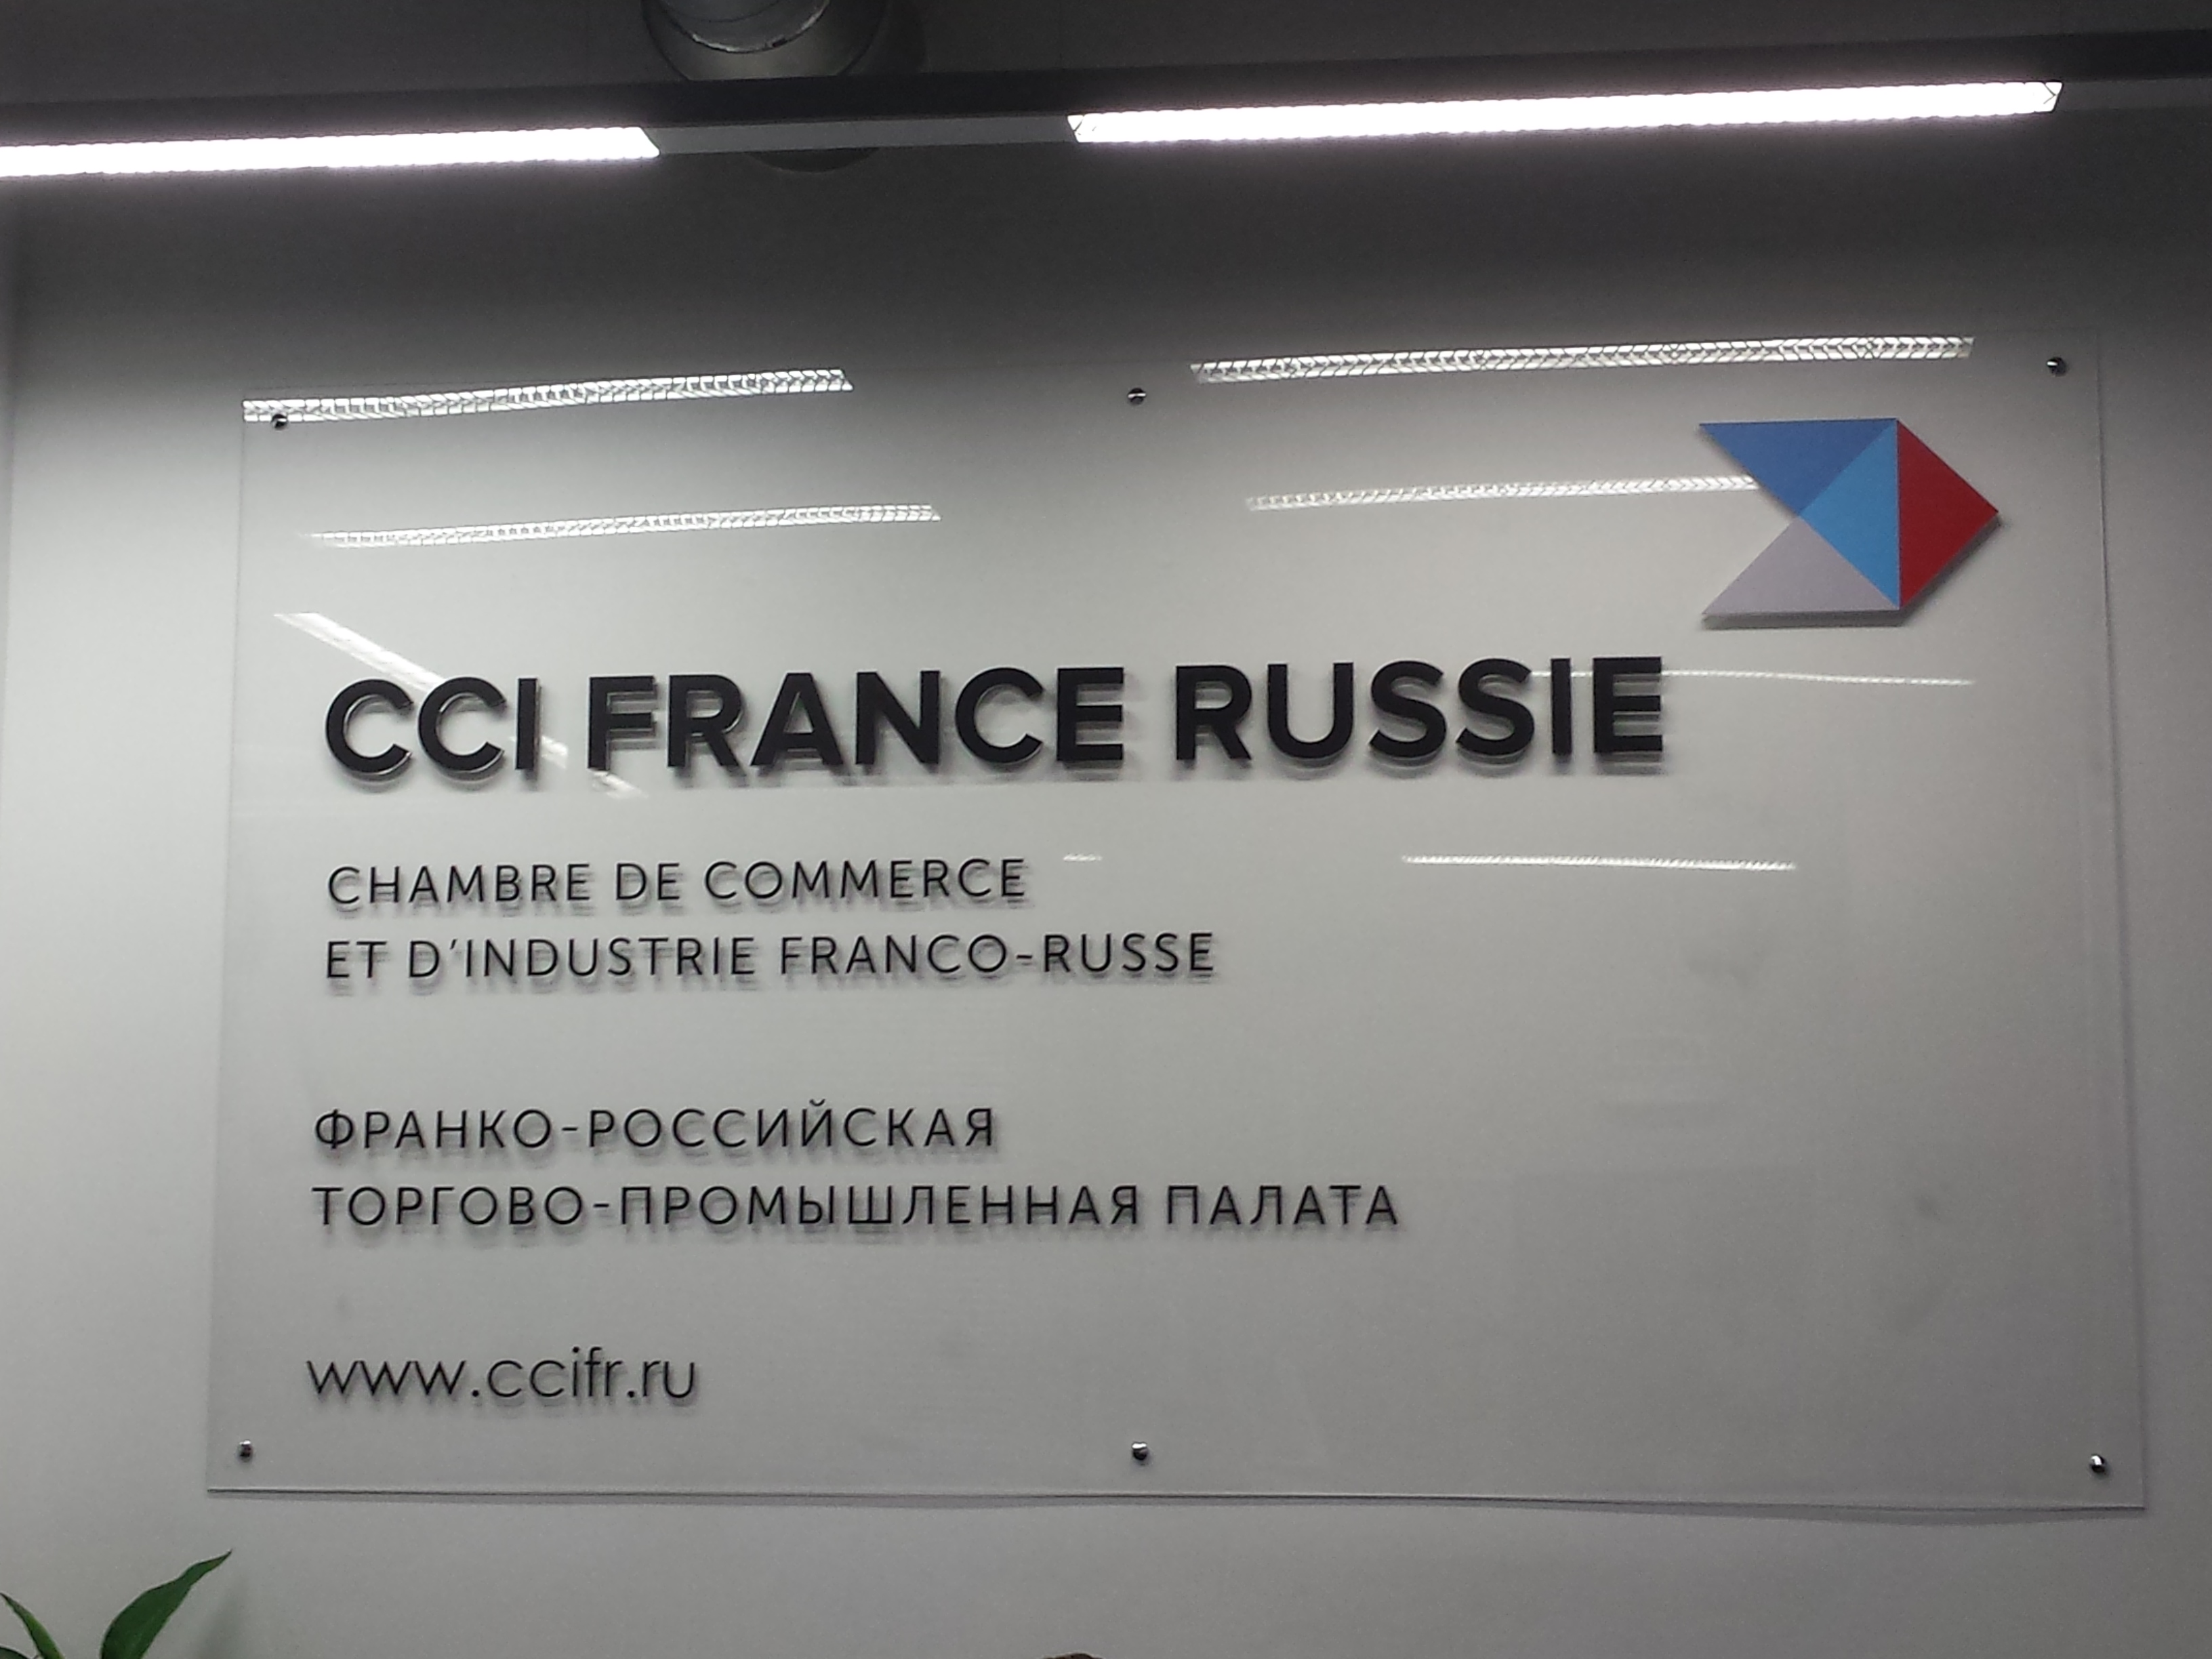 Direction la russie pour d velopper le fran ais for Chambre de commerce franco russe